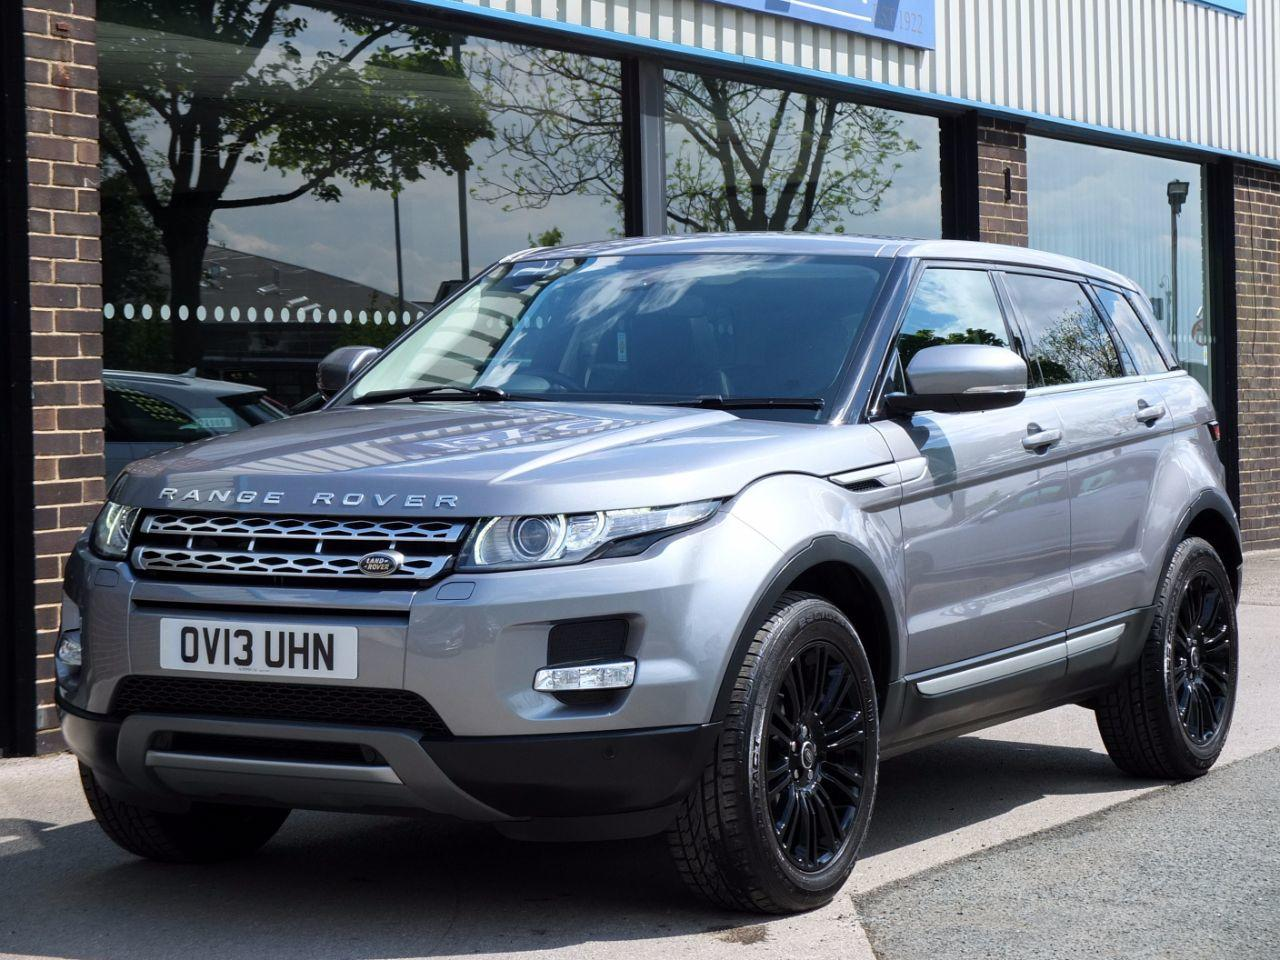 Land Rover Range Rover Evoque 2.2 SD4 Prestige 5 door Auto Estate Diesel Orkney Grey MetallicLand Rover Range Rover Evoque 2.2 SD4 Prestige 5 door Auto Estate Diesel Orkney Grey Metallic at fa Roper Ltd Bradford